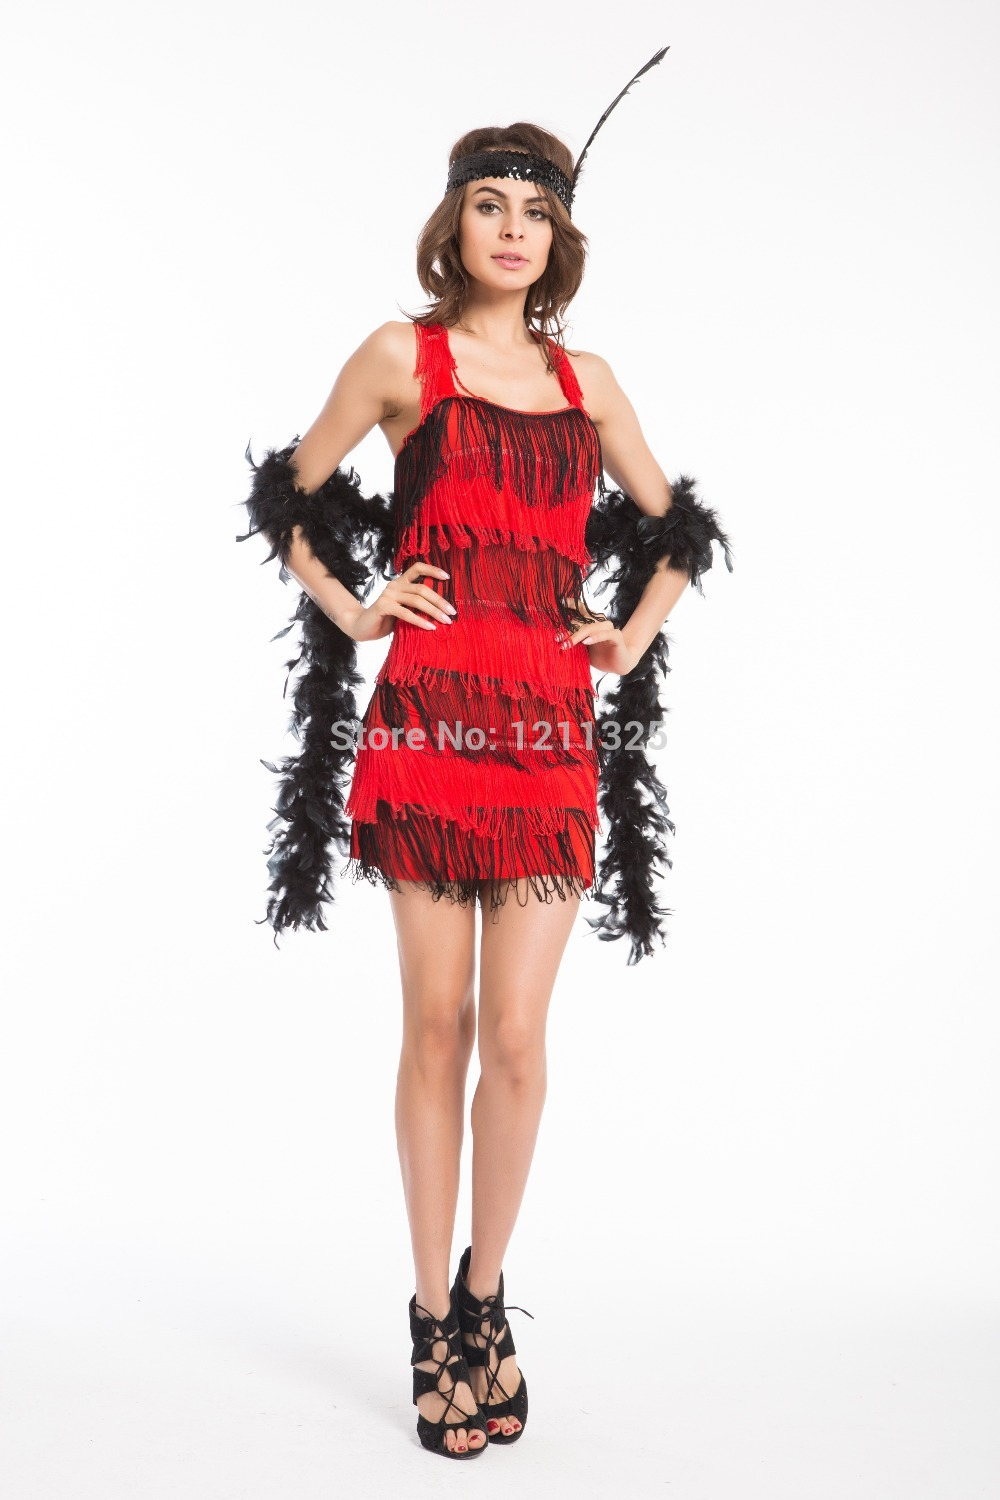 Dazzling dance dress Gold red purple red Flapper Costume with Feather fancy dress  costume party dress plus size s 3xl-in Holidays Costumes from Novelty ... 0faa73b39